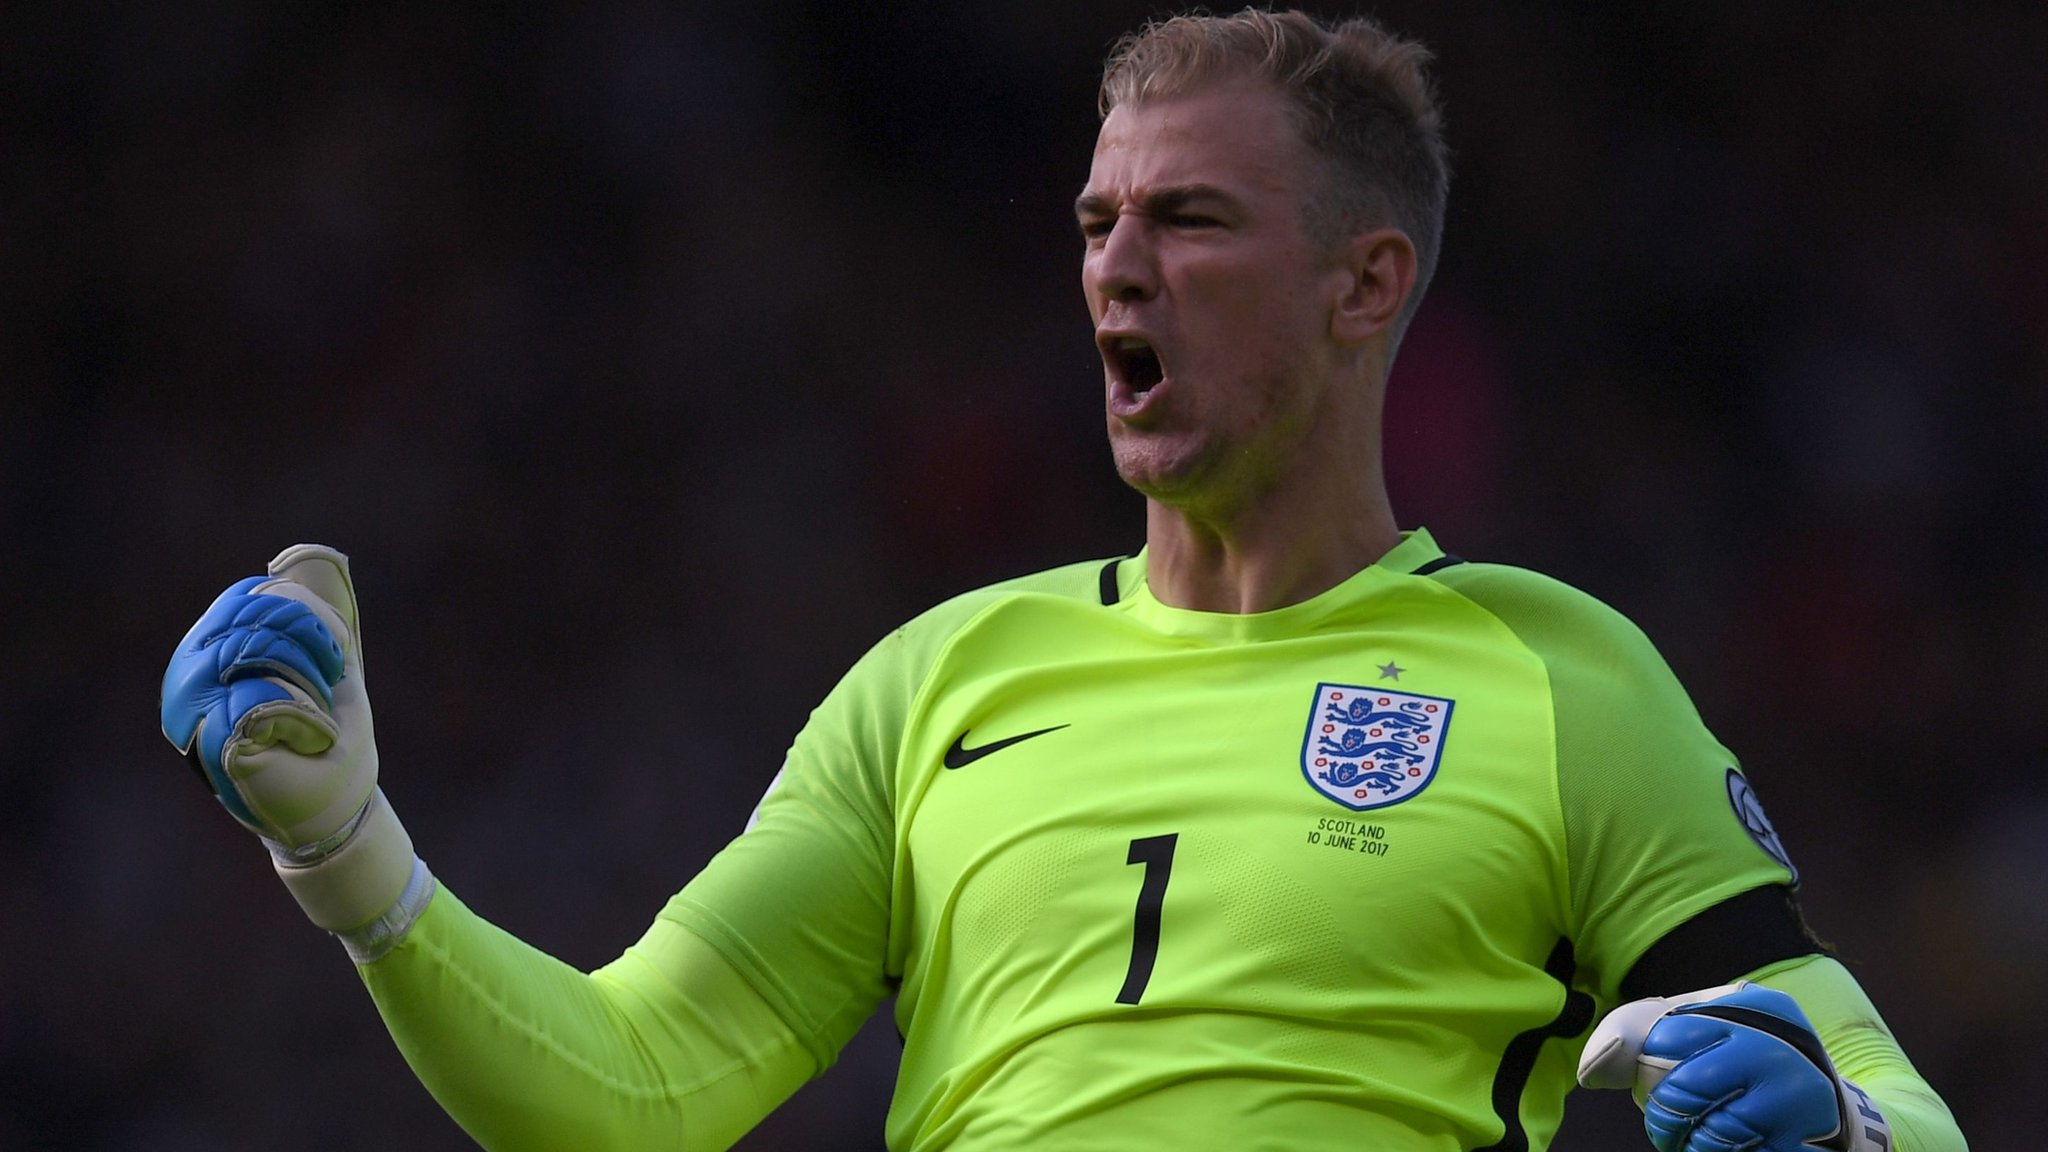 Joe Hart turns out for Shrewsbury Cricket Club during England's World Cup game